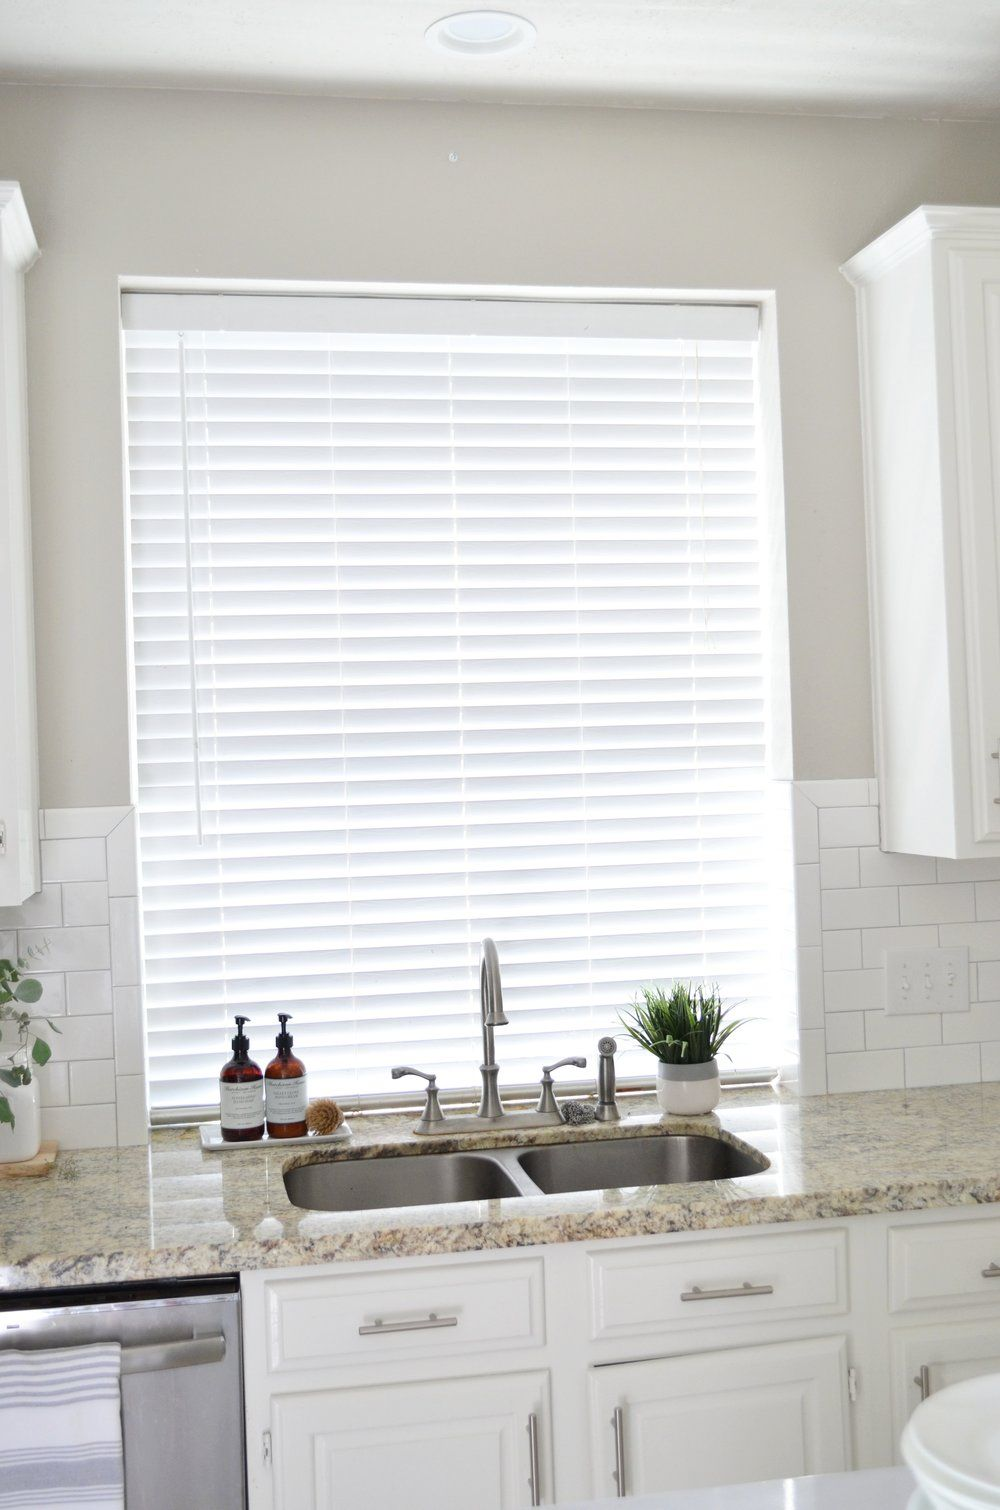 window without trim your tile would go all the way around it though diy window trim diy on kitchen cabinets around window id=39029